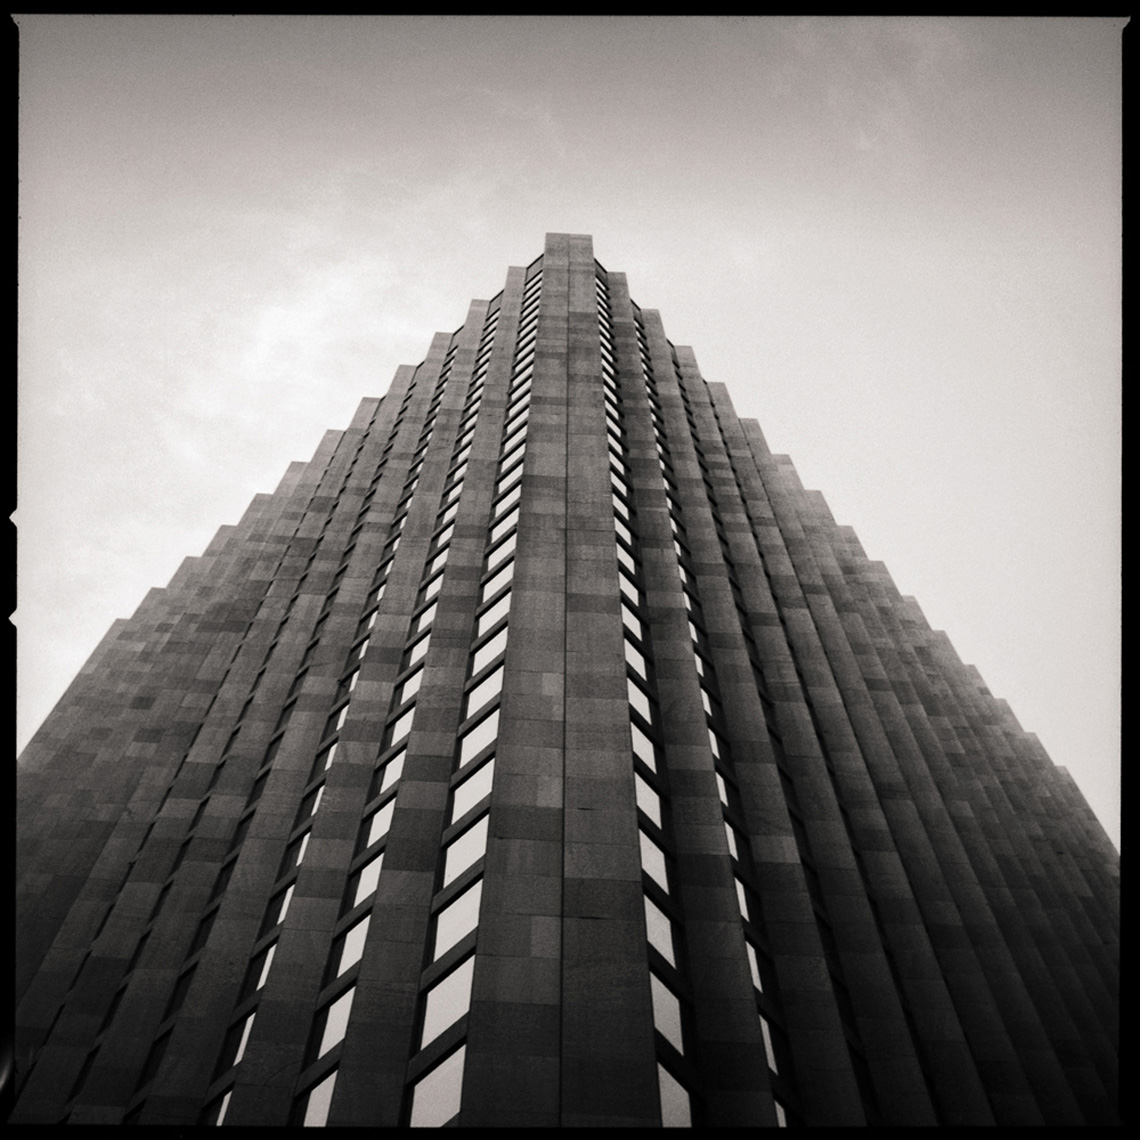 Sean Perry Photographs • The CBS Building, from the series Monolith